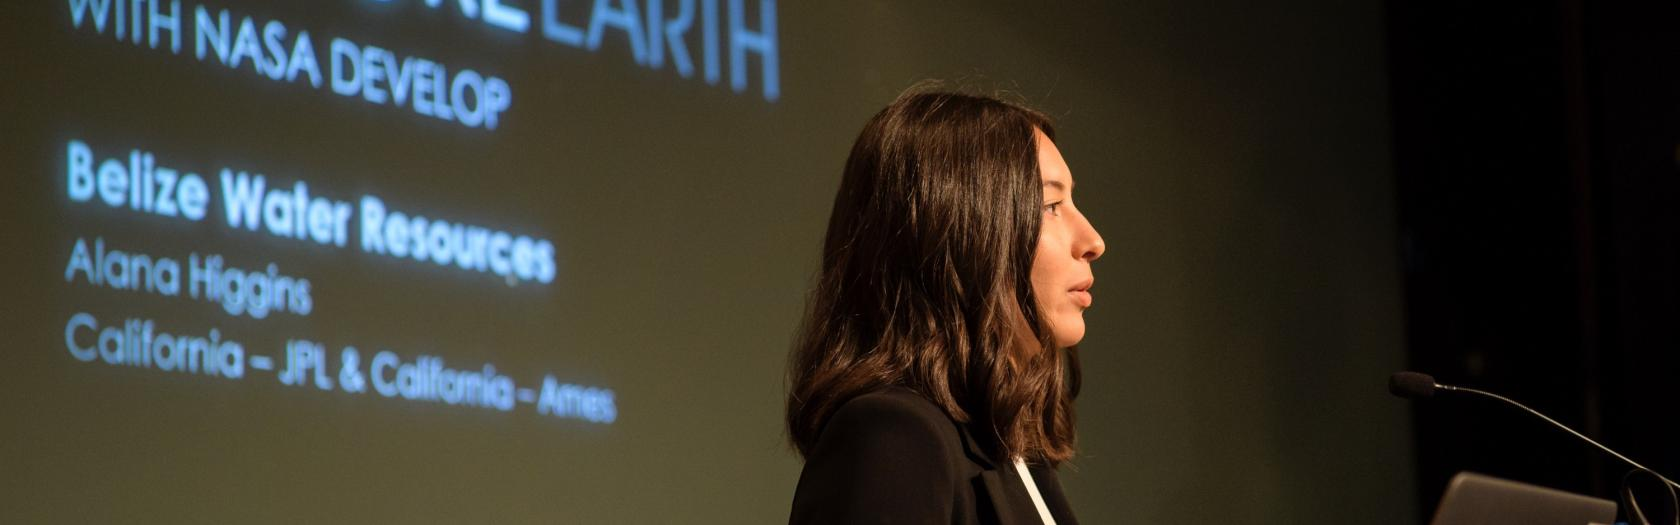 Alana Higgins speaks about water resources in Belize during the 2019 Annual Earth Science Applications Showcase